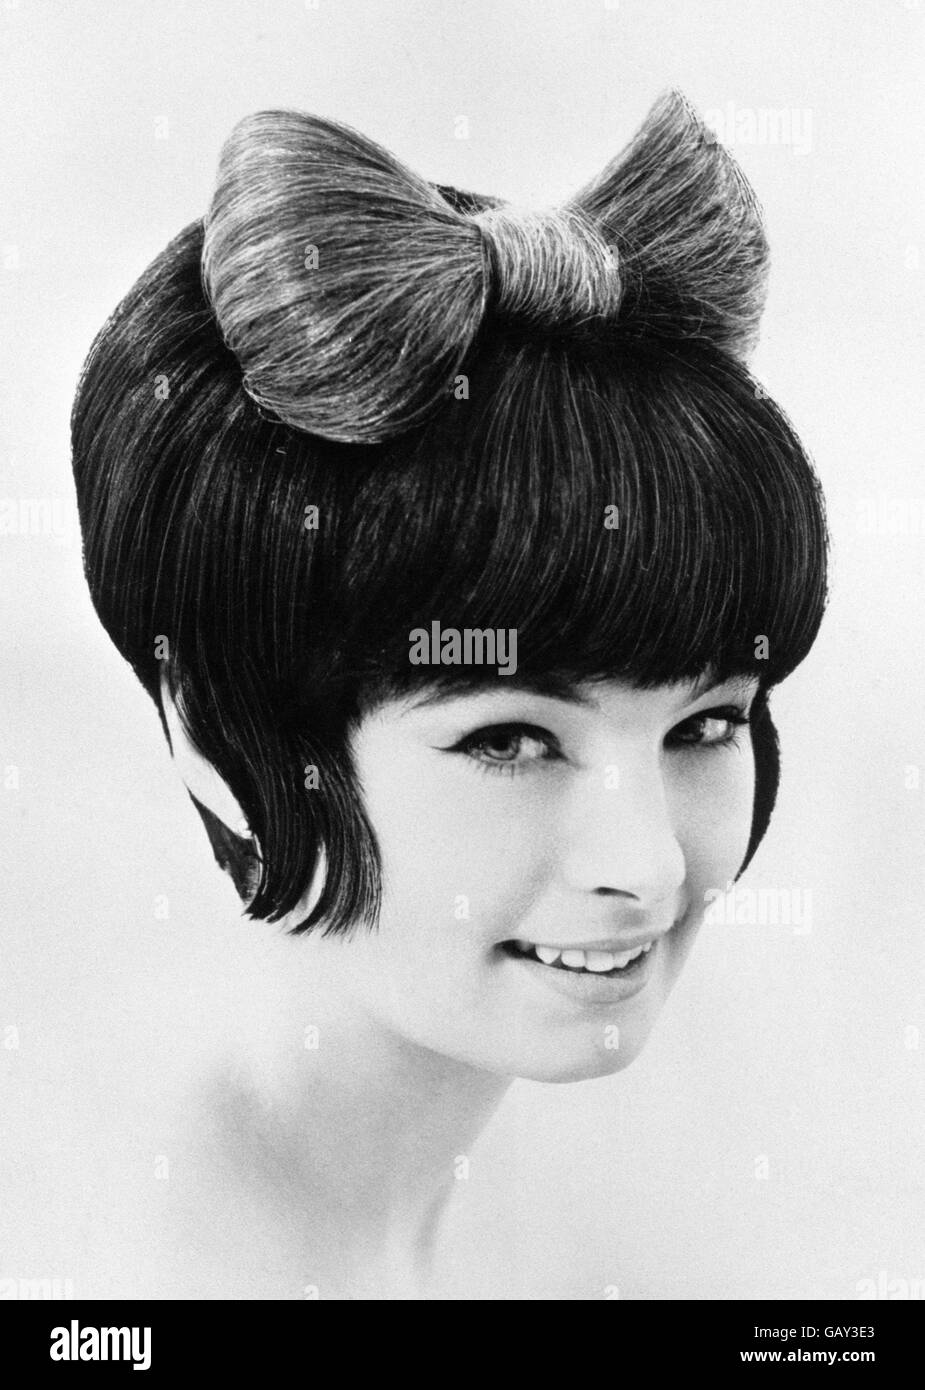 1960s Hairstyles Stock Photos & 1960s Hairstyles Stock ...